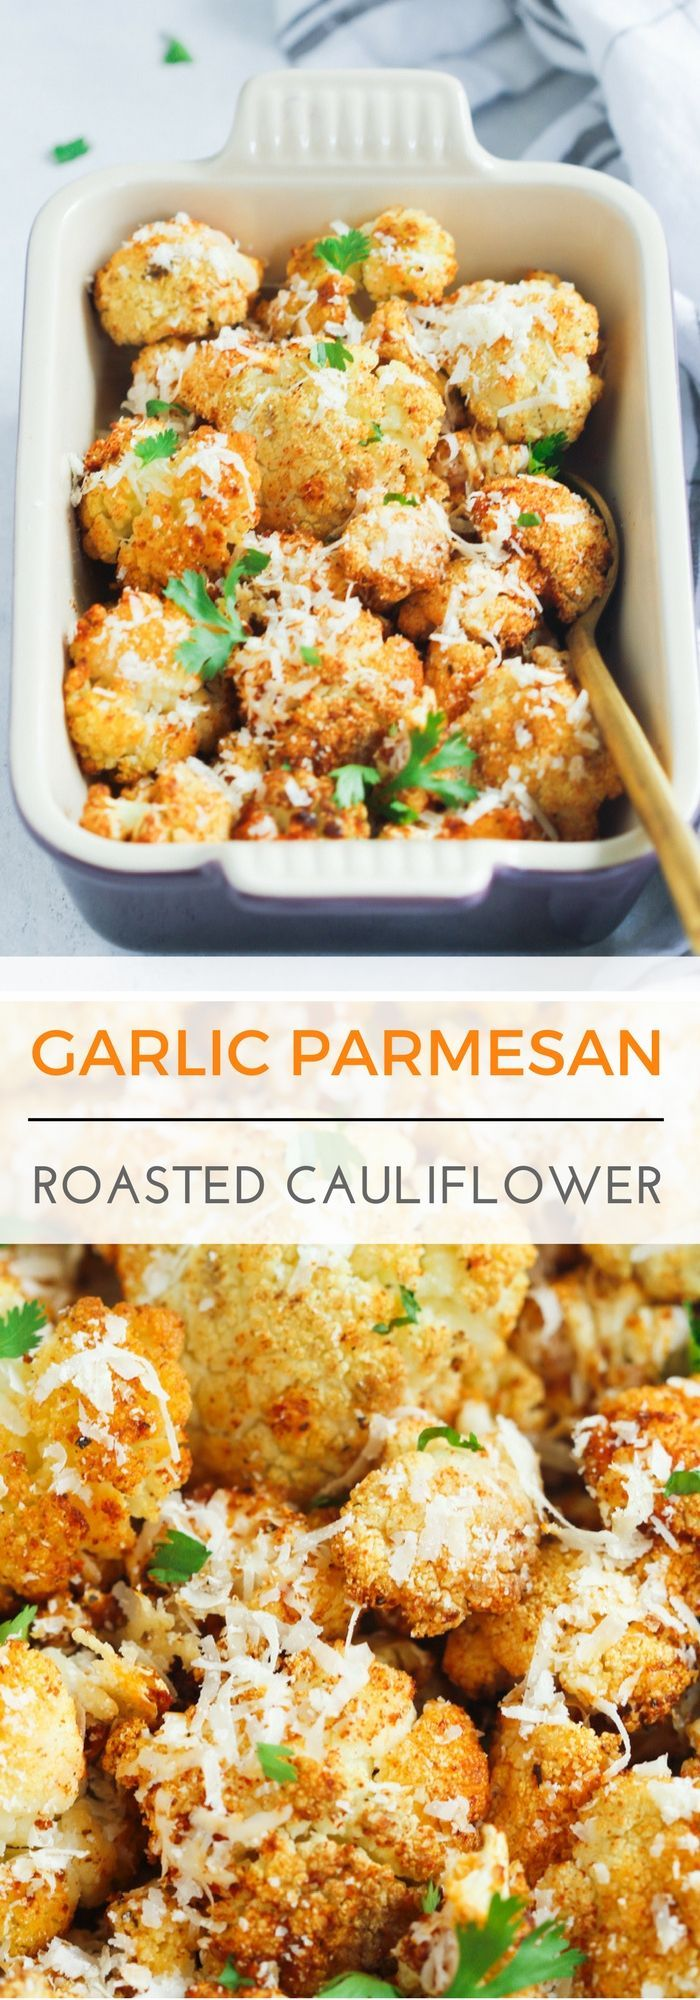 Photo of Garlic Parmesan Roasted Cauliflower – This easy Garlic Parmesan Roasted Cauliflo…